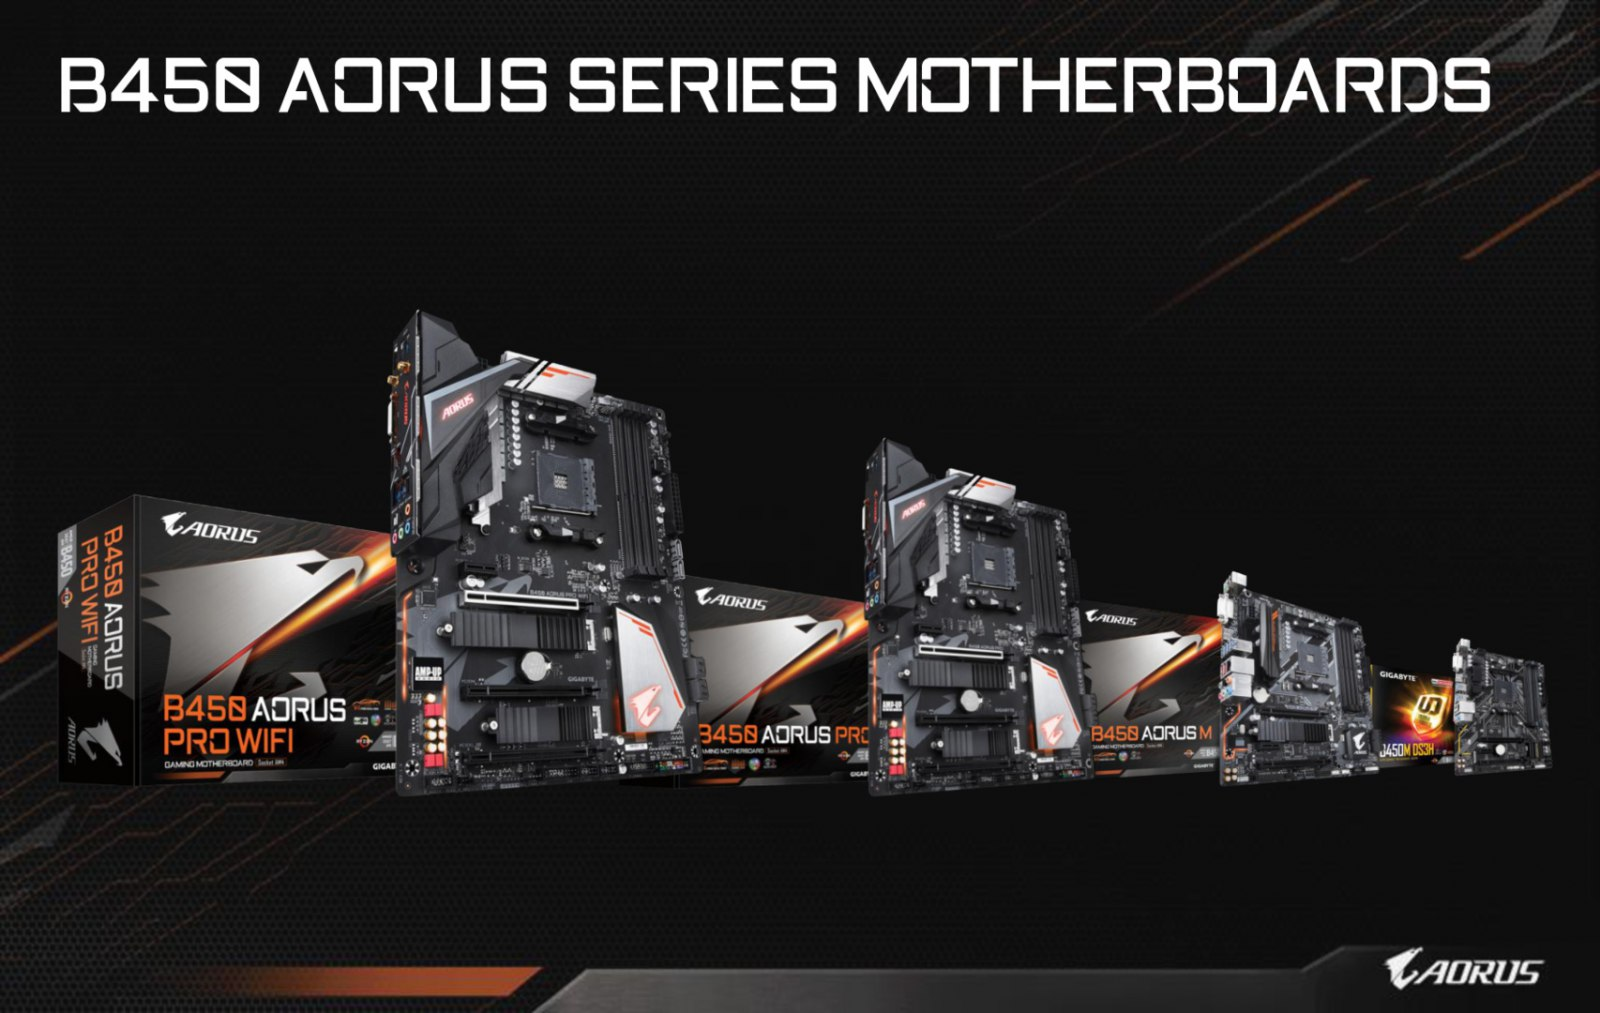 Gigabyte Reveals B450 Motherboard Specifications - Industry